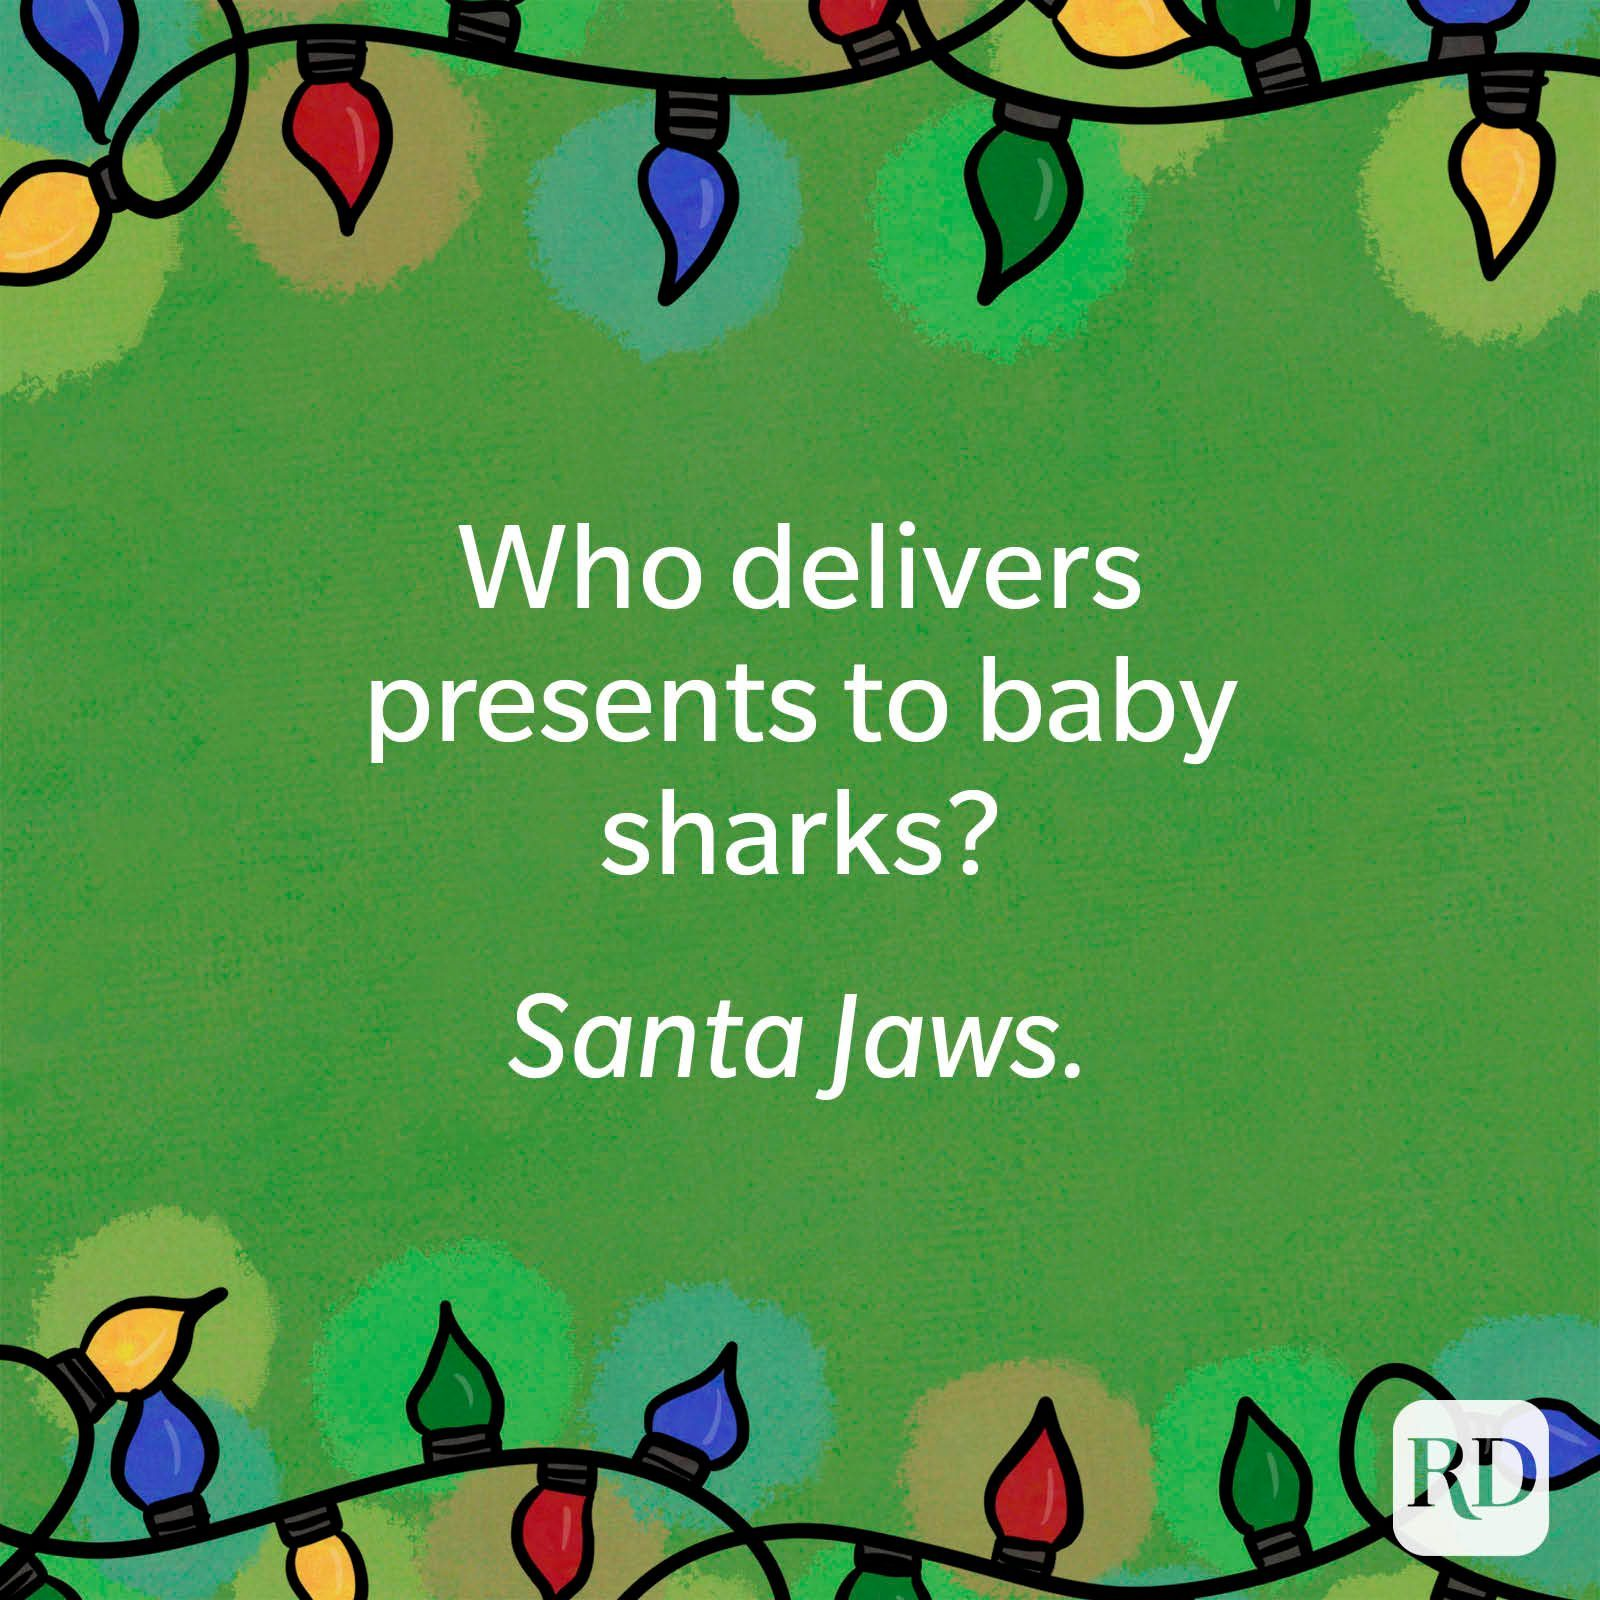 Who delivers presents to baby sharks? Santa jaws.